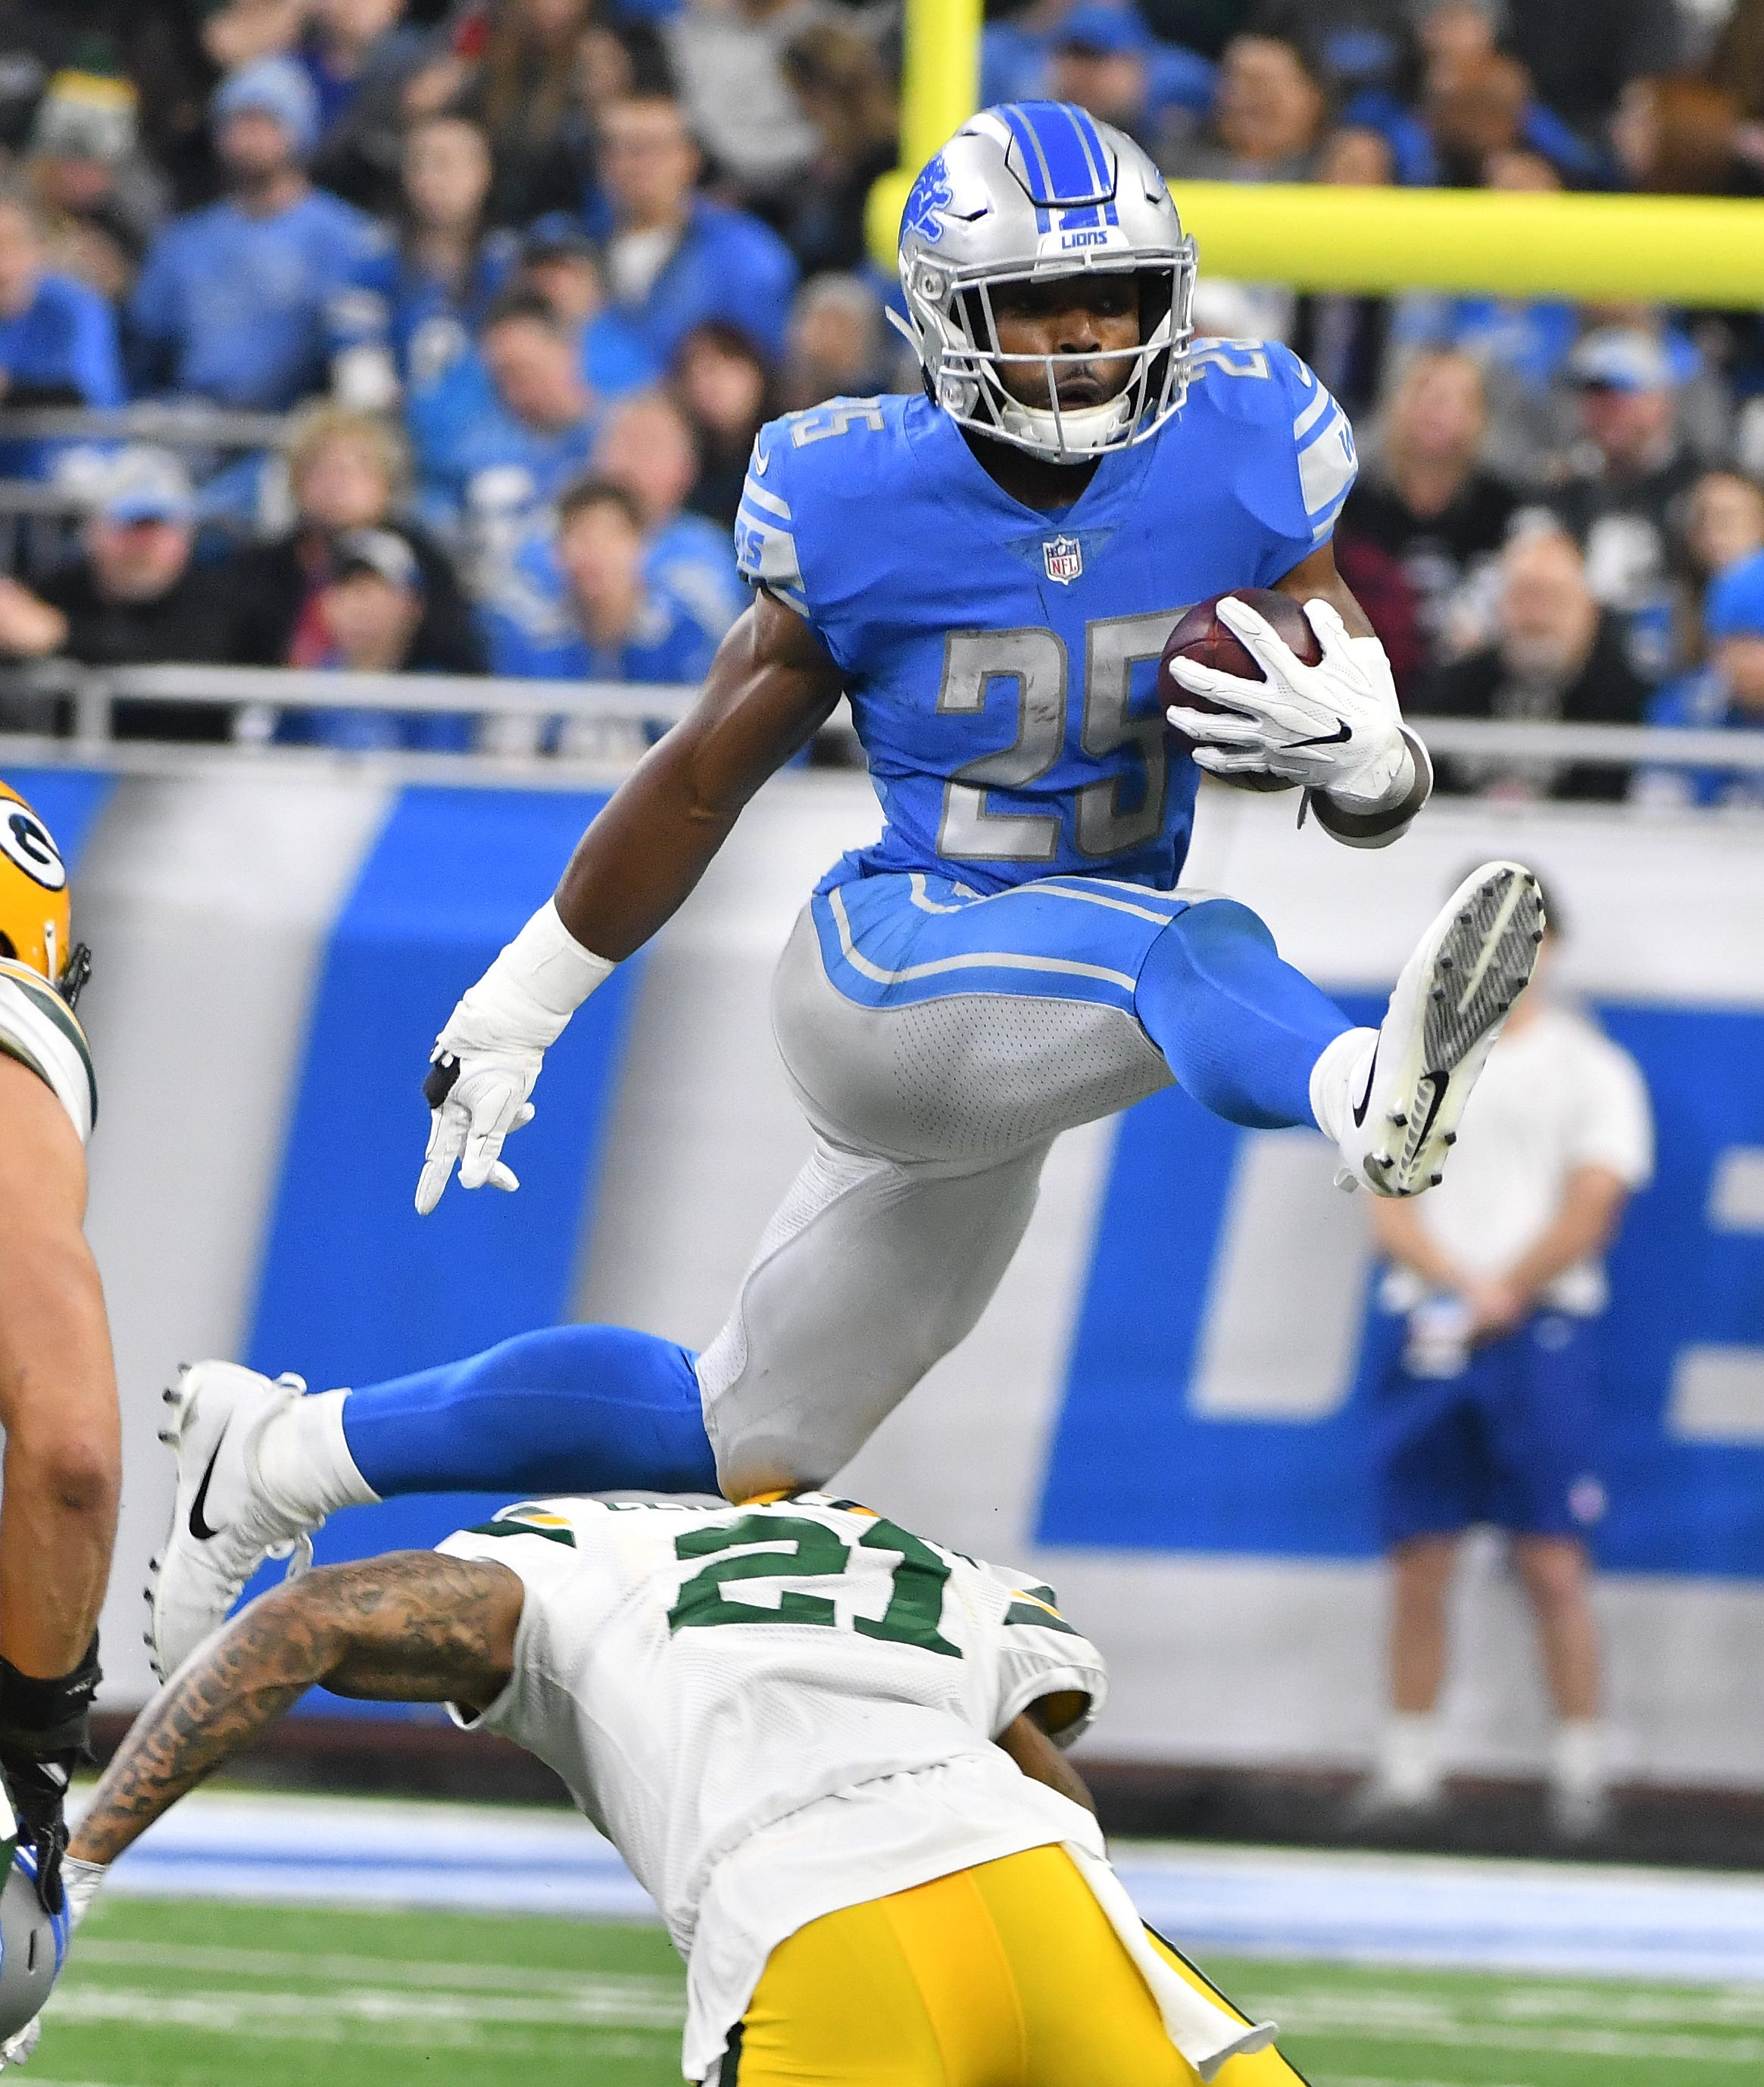 http   www.detroitnews.com picture-gallery sports nfl lions 2018 06 25 ... 284febb4a